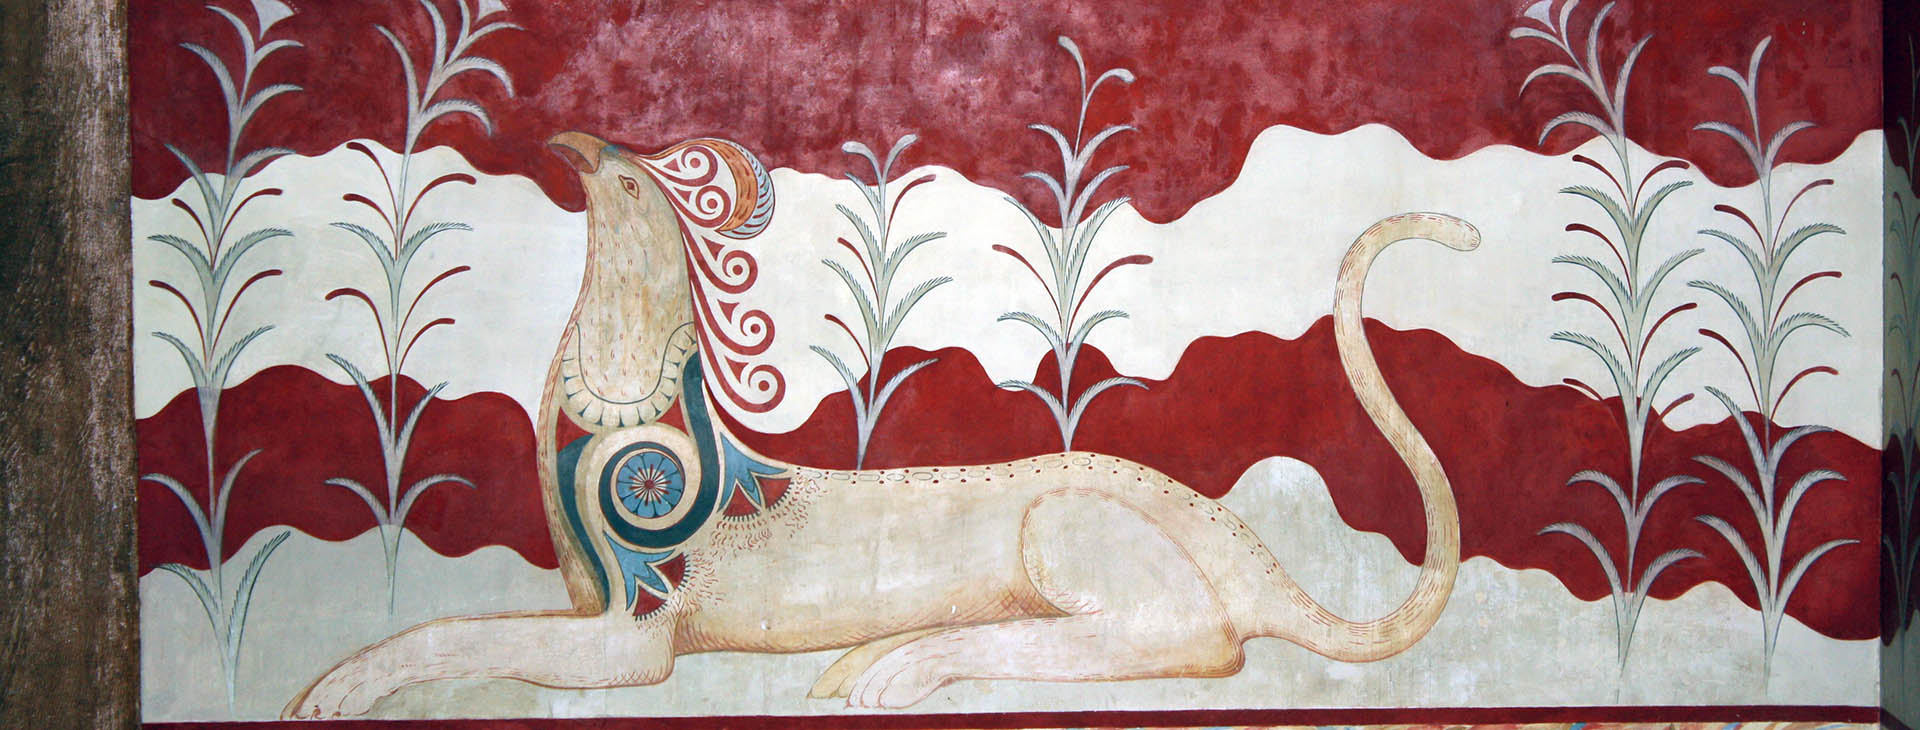 Griffin, fresco at the Minoan palace of Knossos, Heraklion